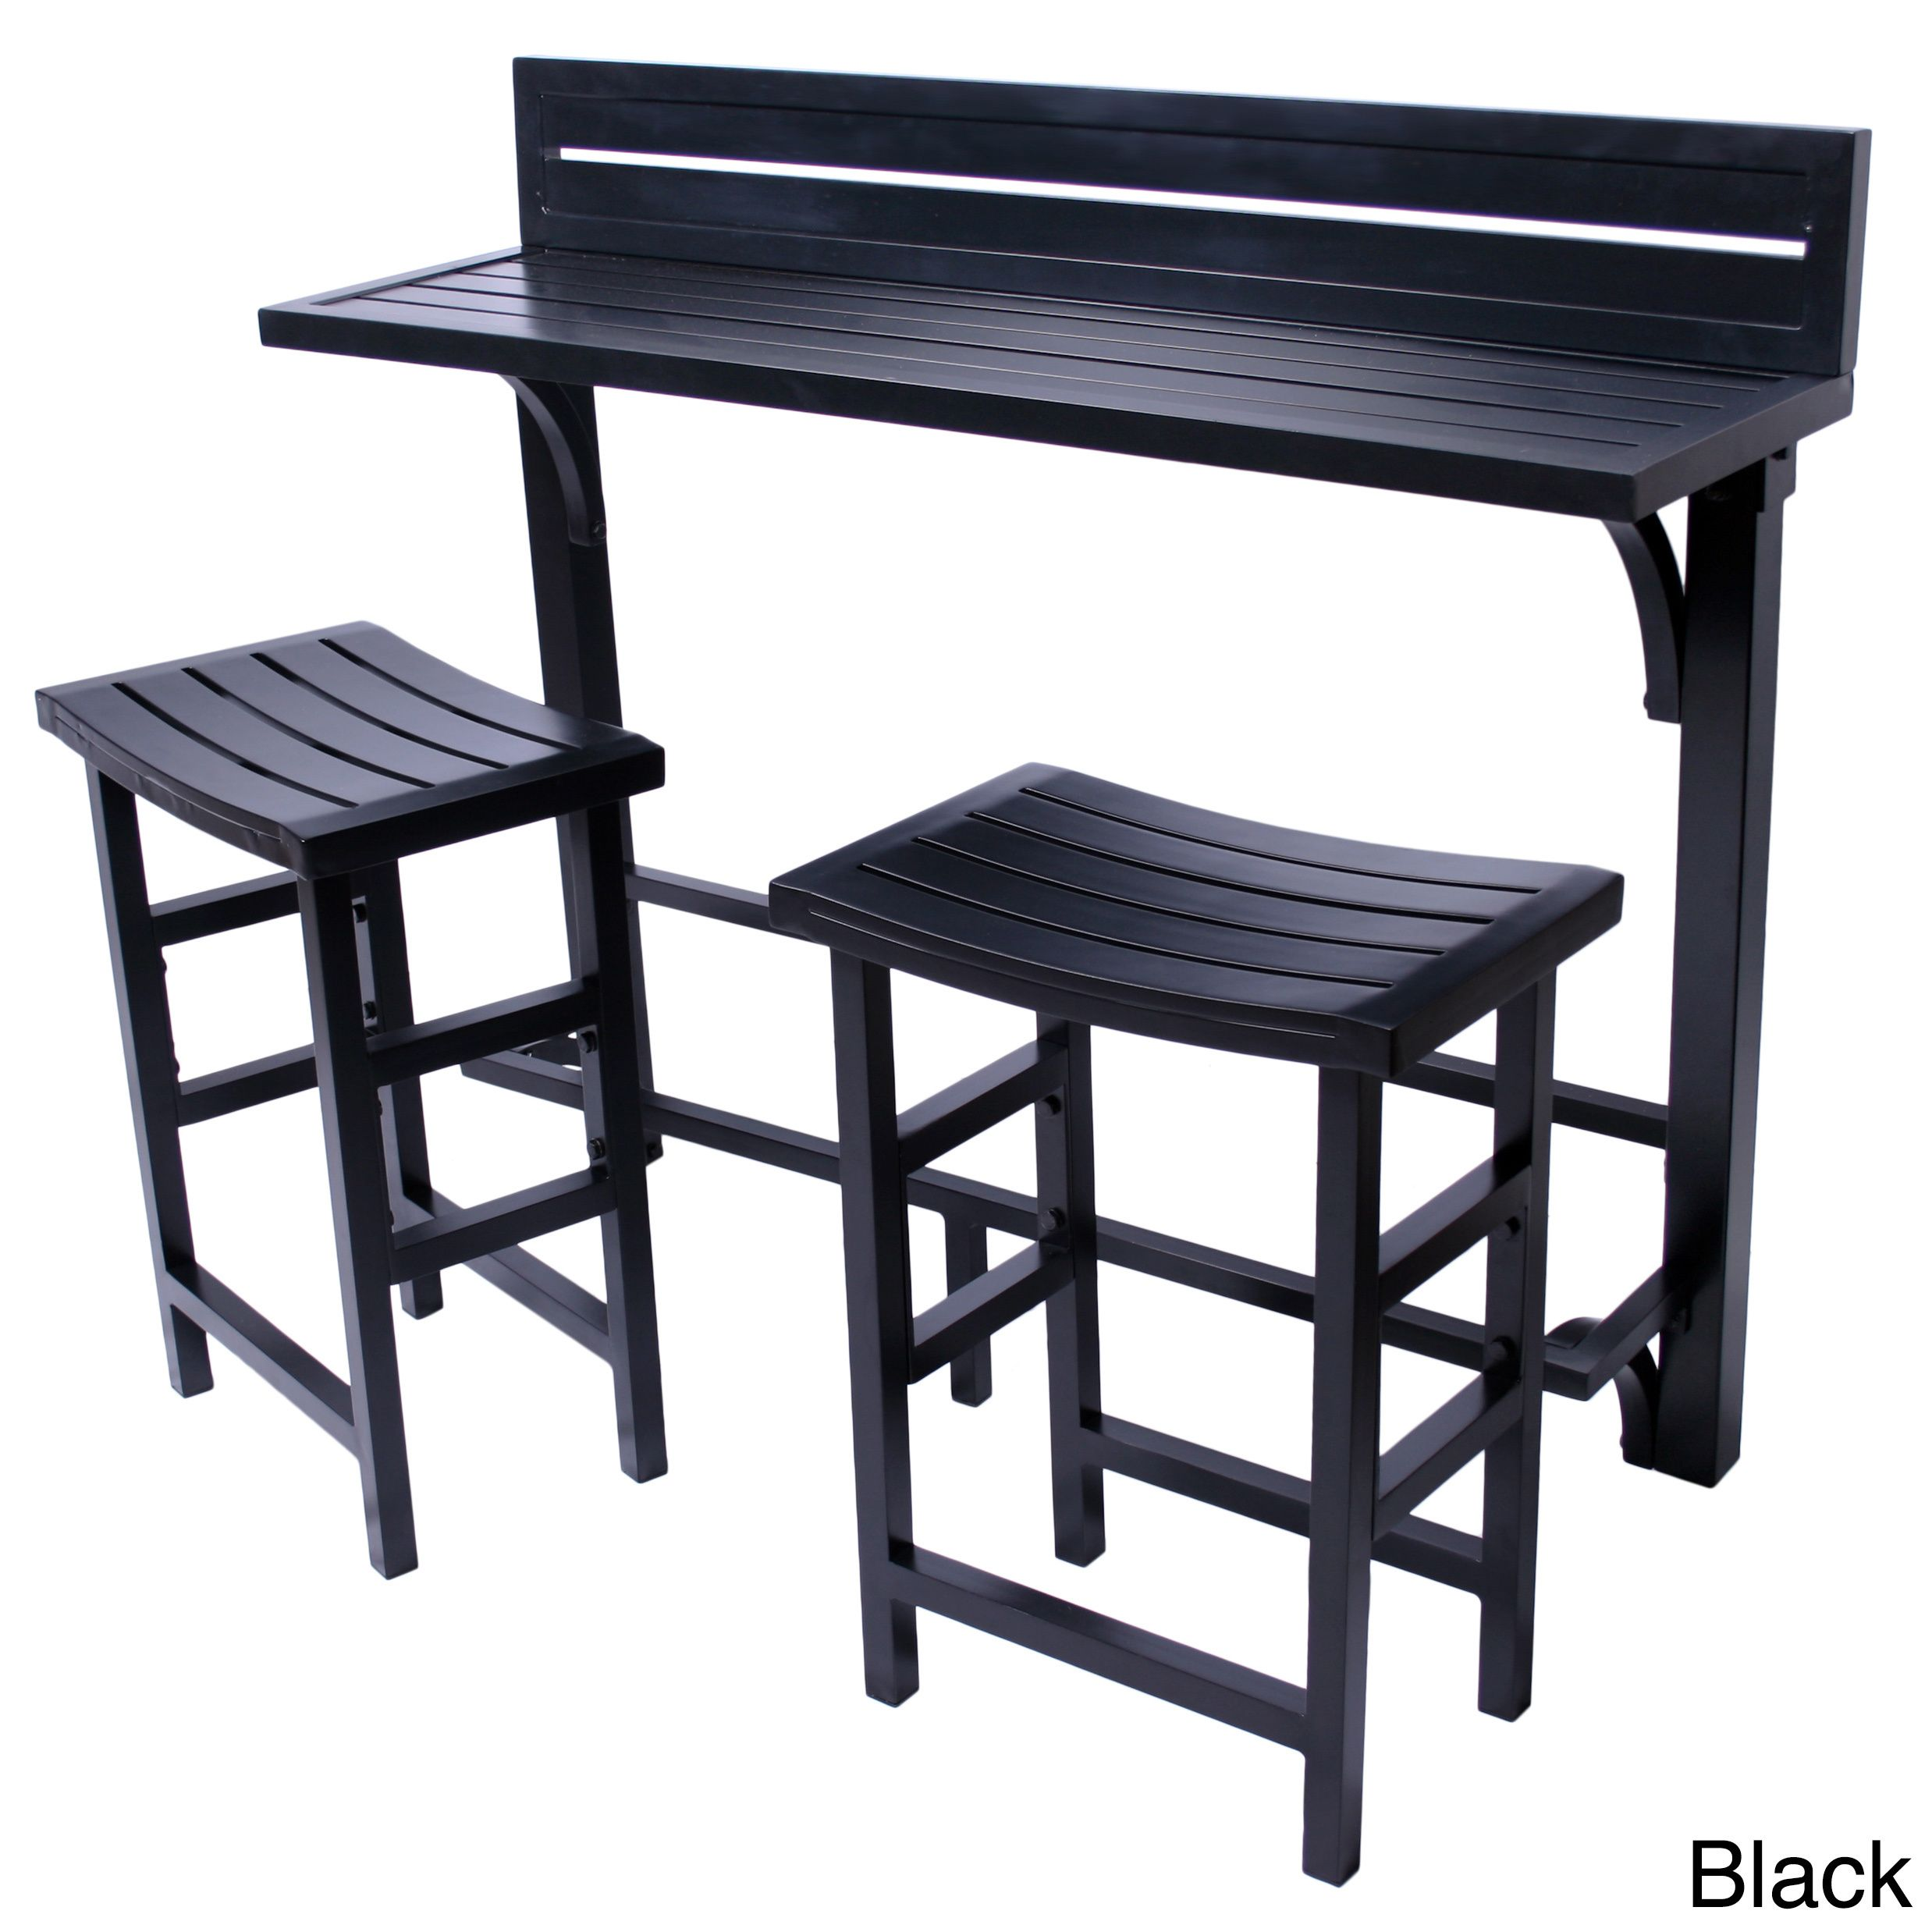 Superior MiYu Furniture Balcony Bar, Is The Perfect Item For Any Balcony. Great  Space Saving